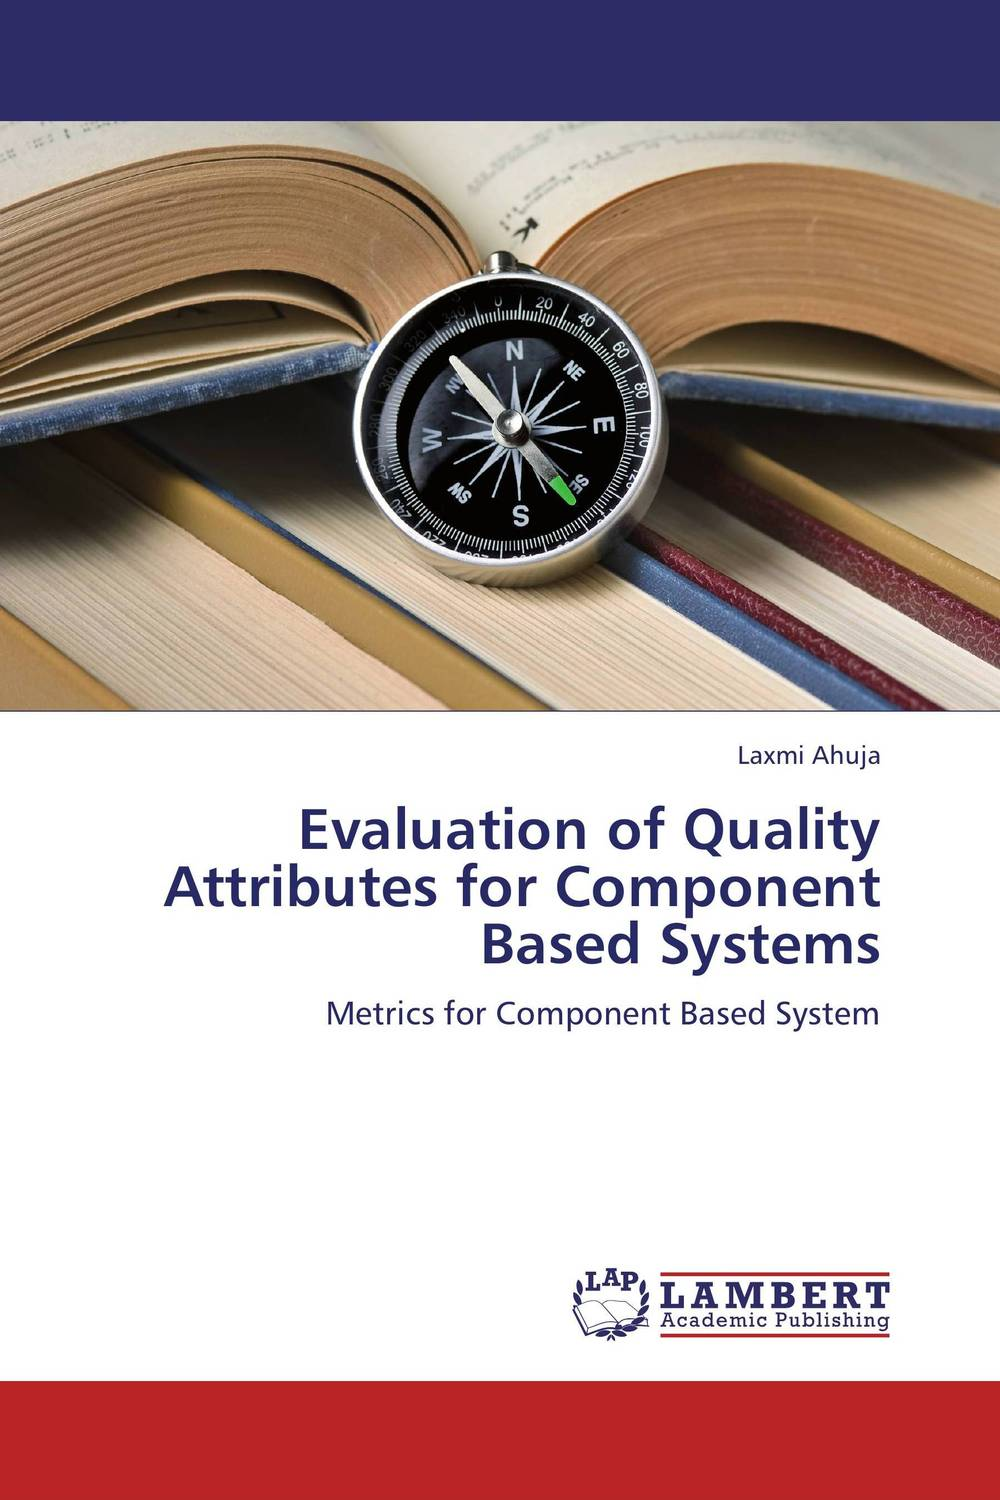 Evaluation of Quality Attributes for Component Based Systems component based systems a quality assurance framework